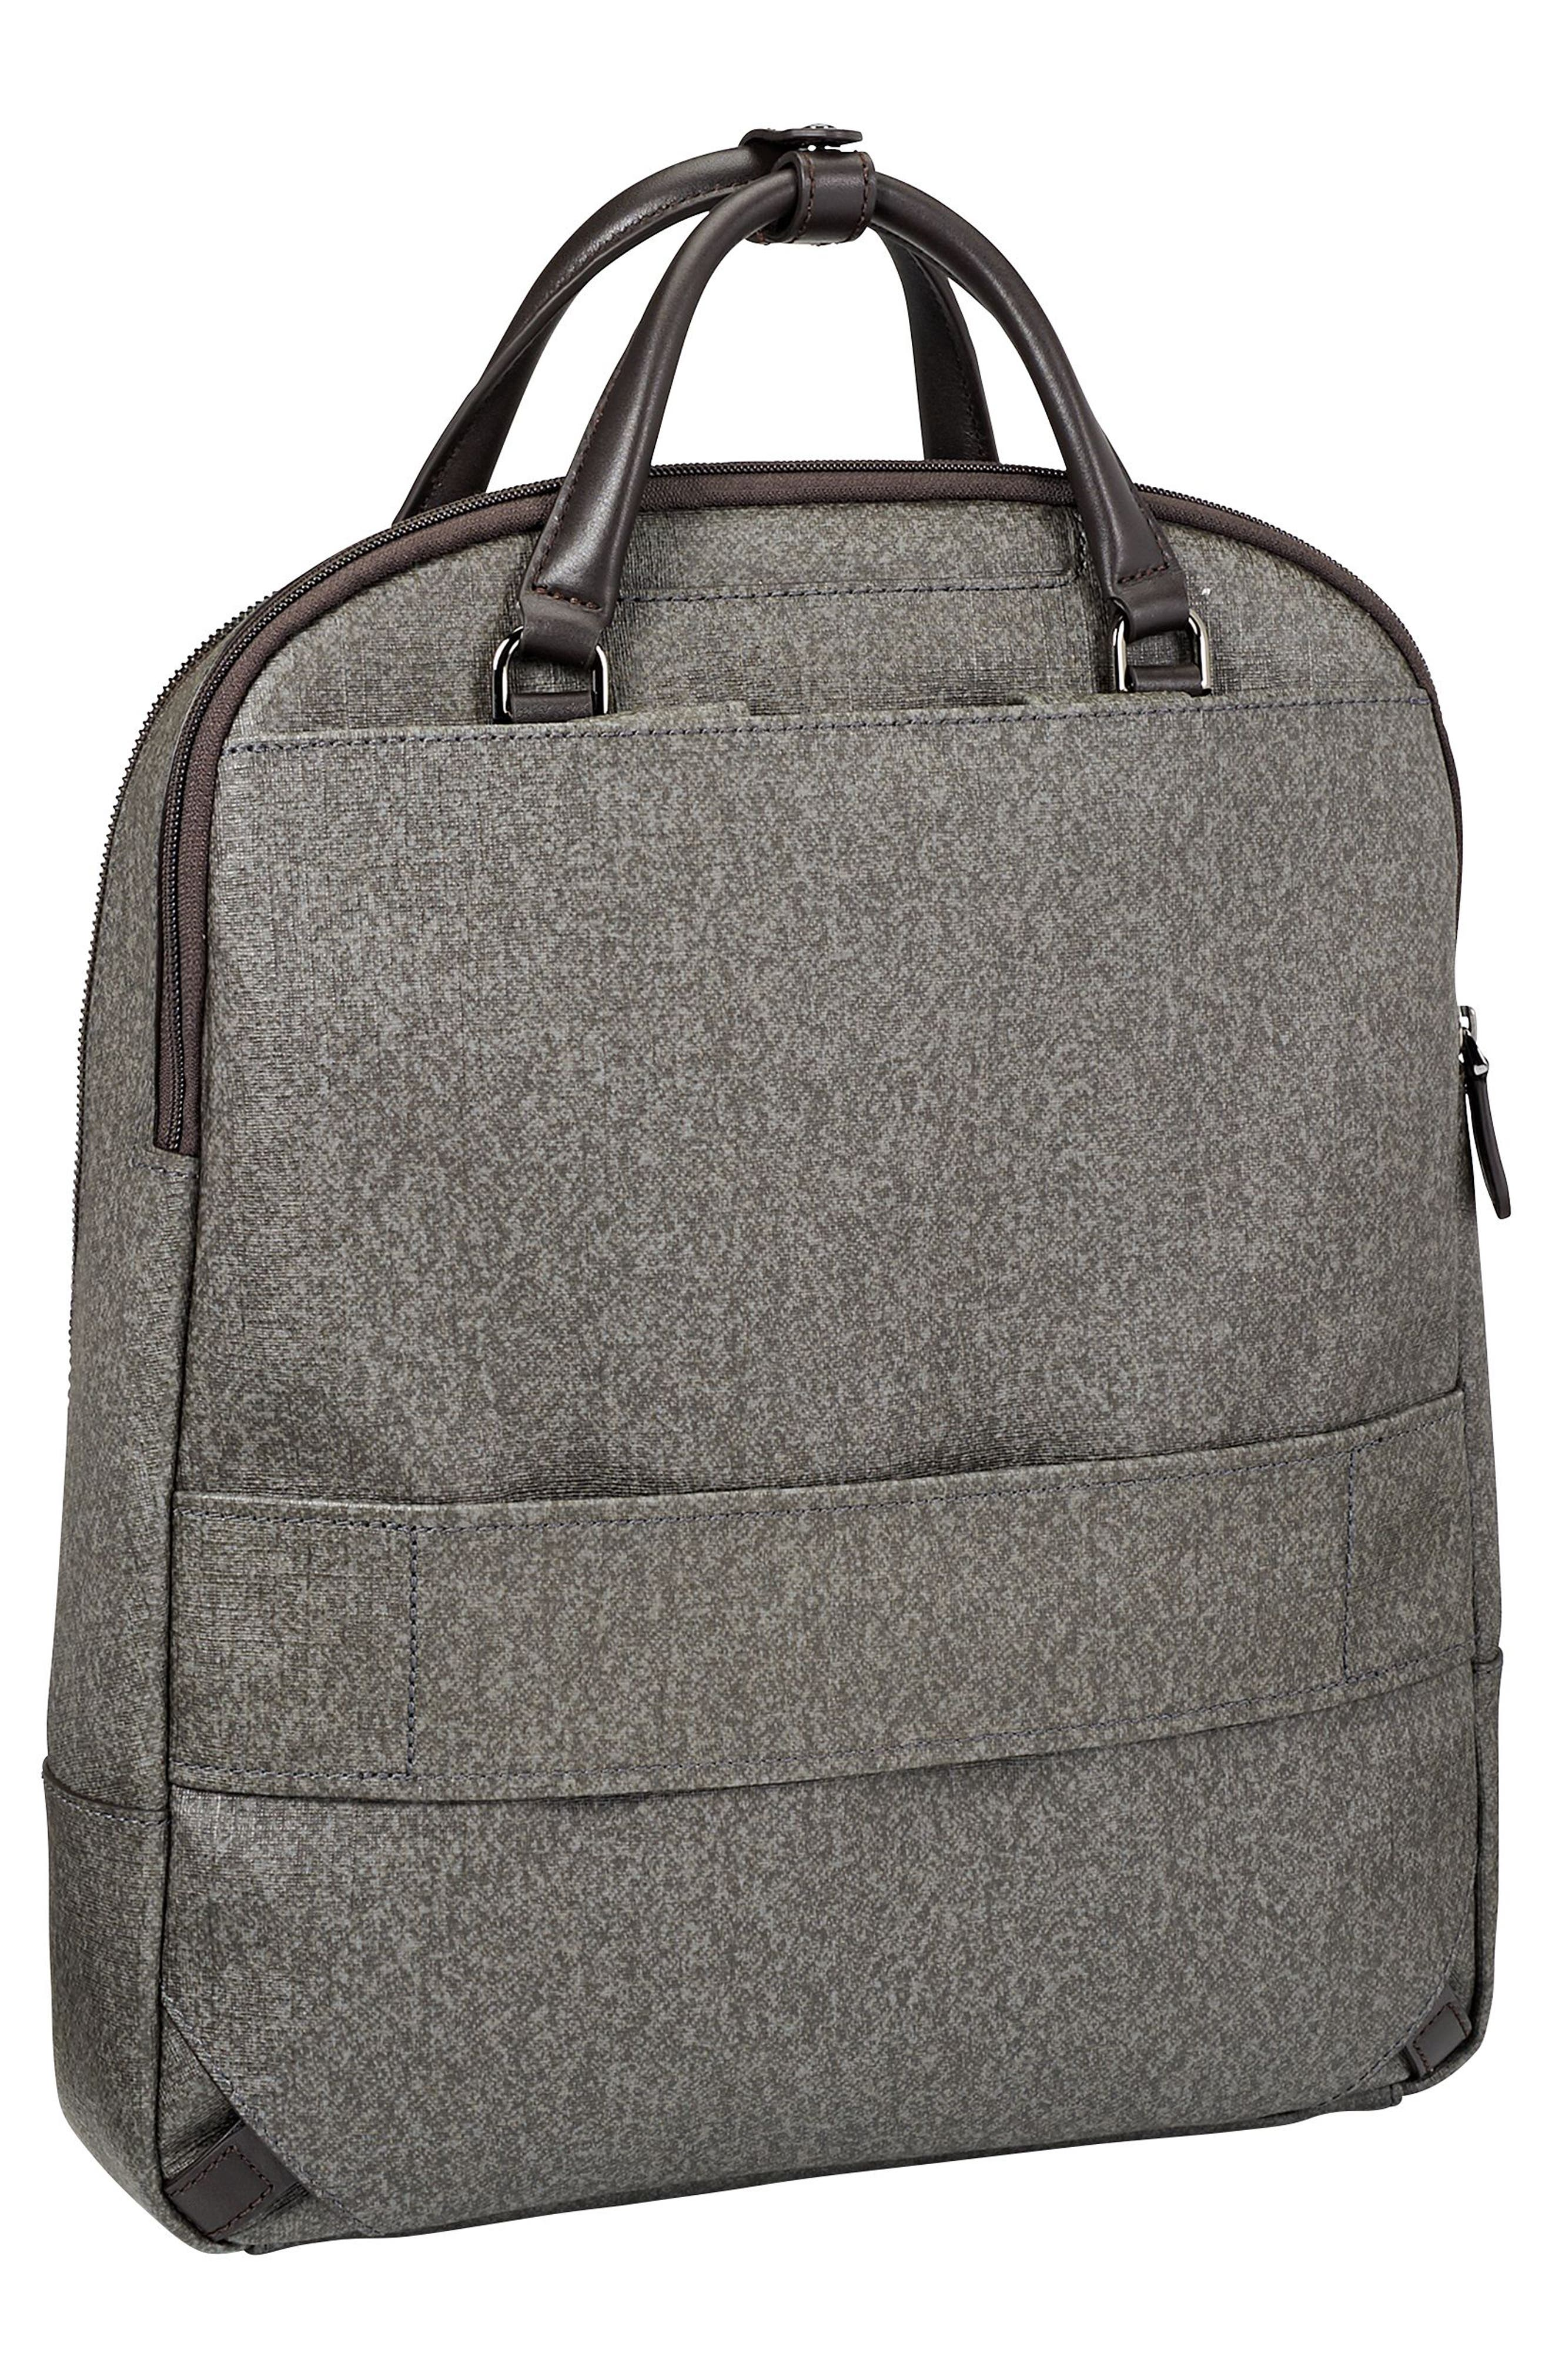 Stanton Orion Coated Canvas Backpack,                             Alternate thumbnail 4, color,                             020